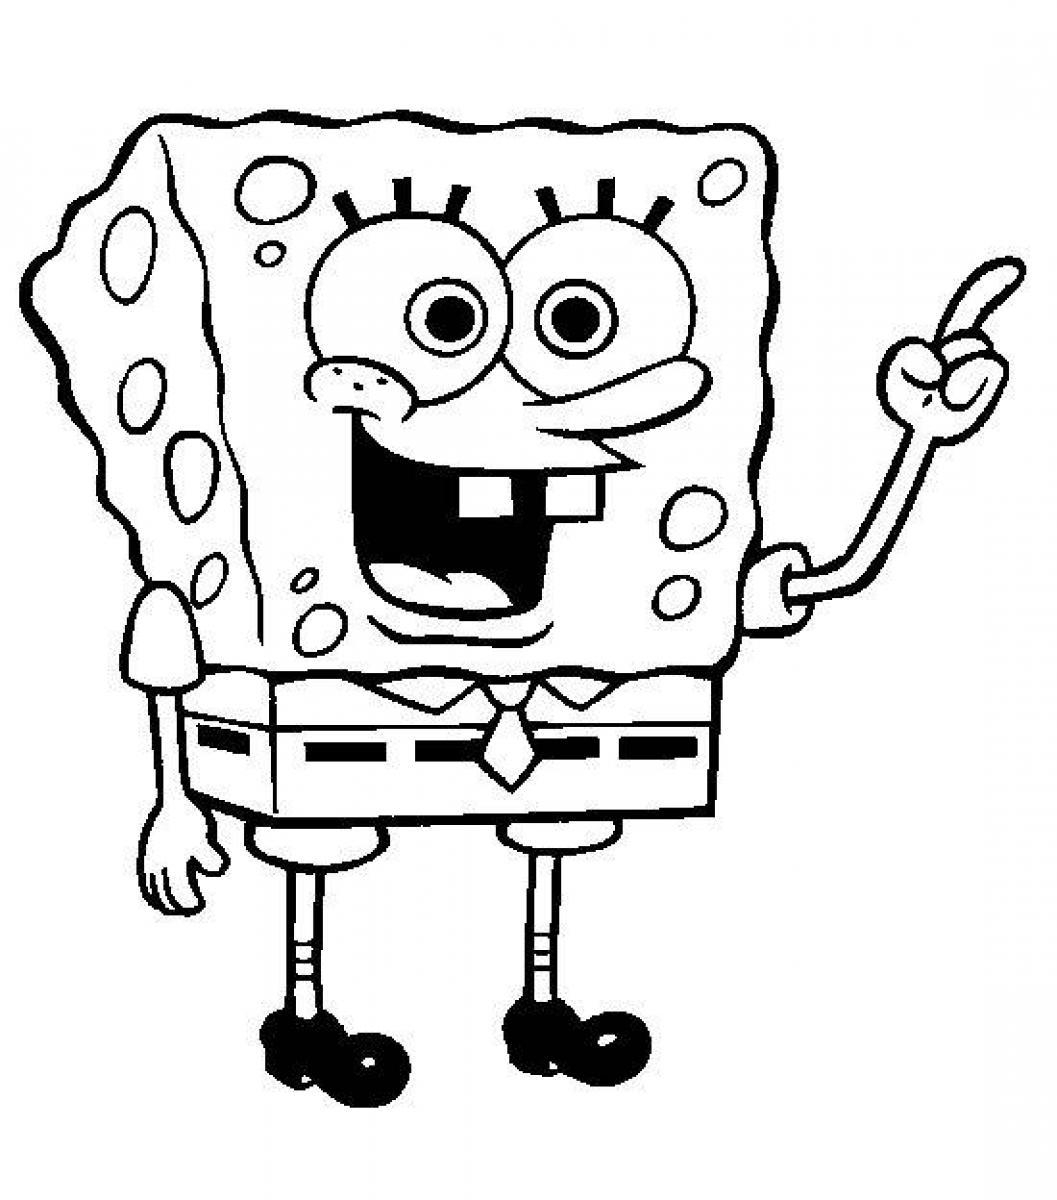 Spongebob Squarepants Coloring Pages - Printable Spongebob Squarepants Coloring Pages